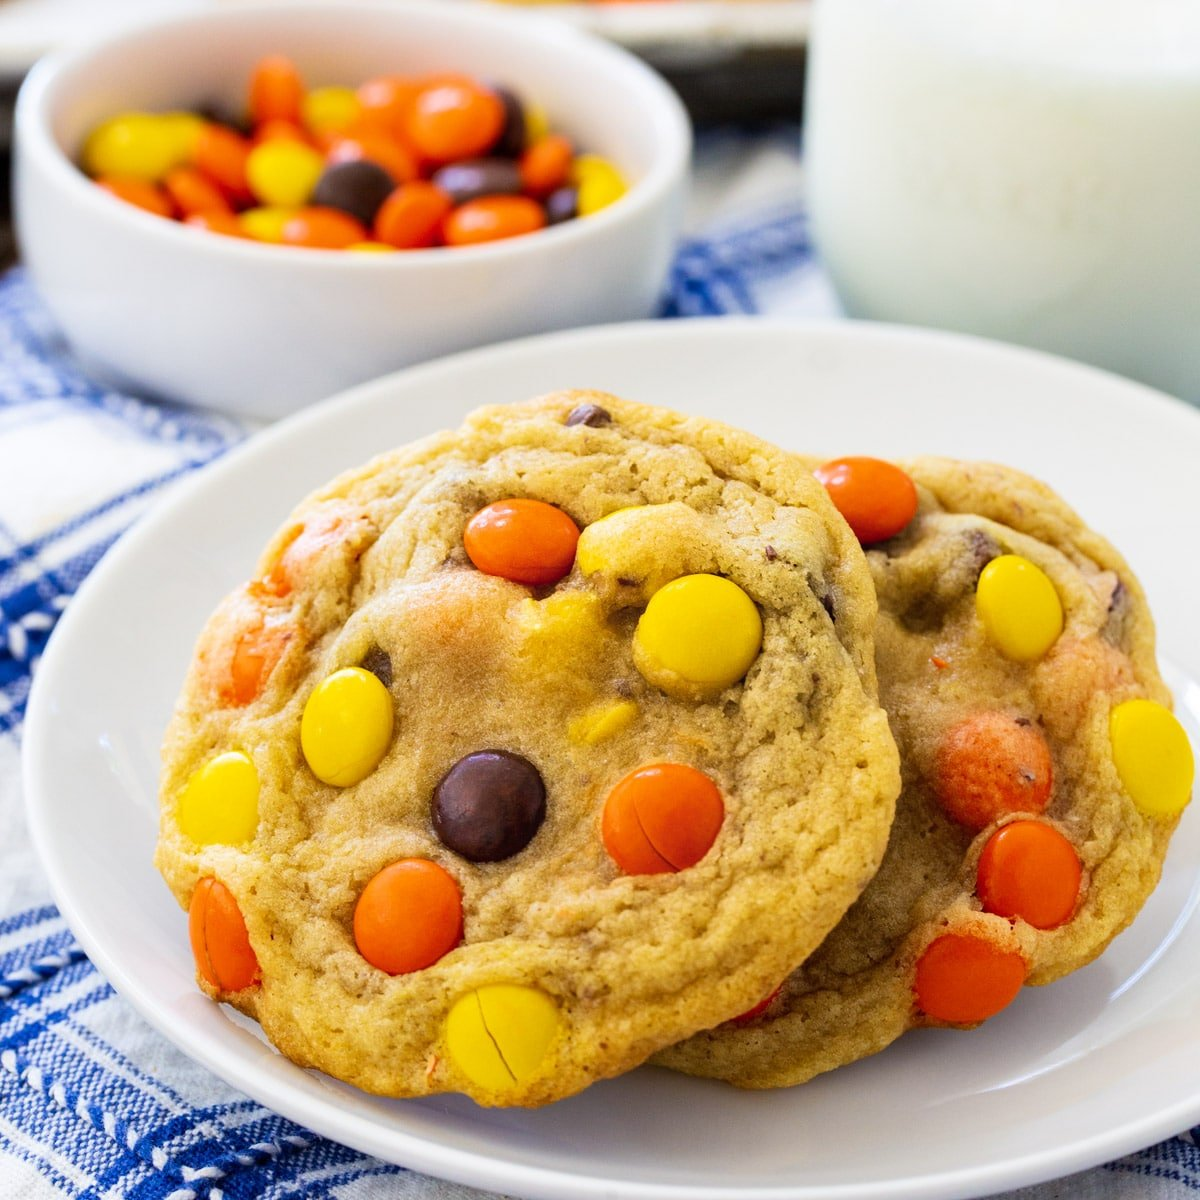 Soft-Baked Reese's Pieces Cookies on a plate.